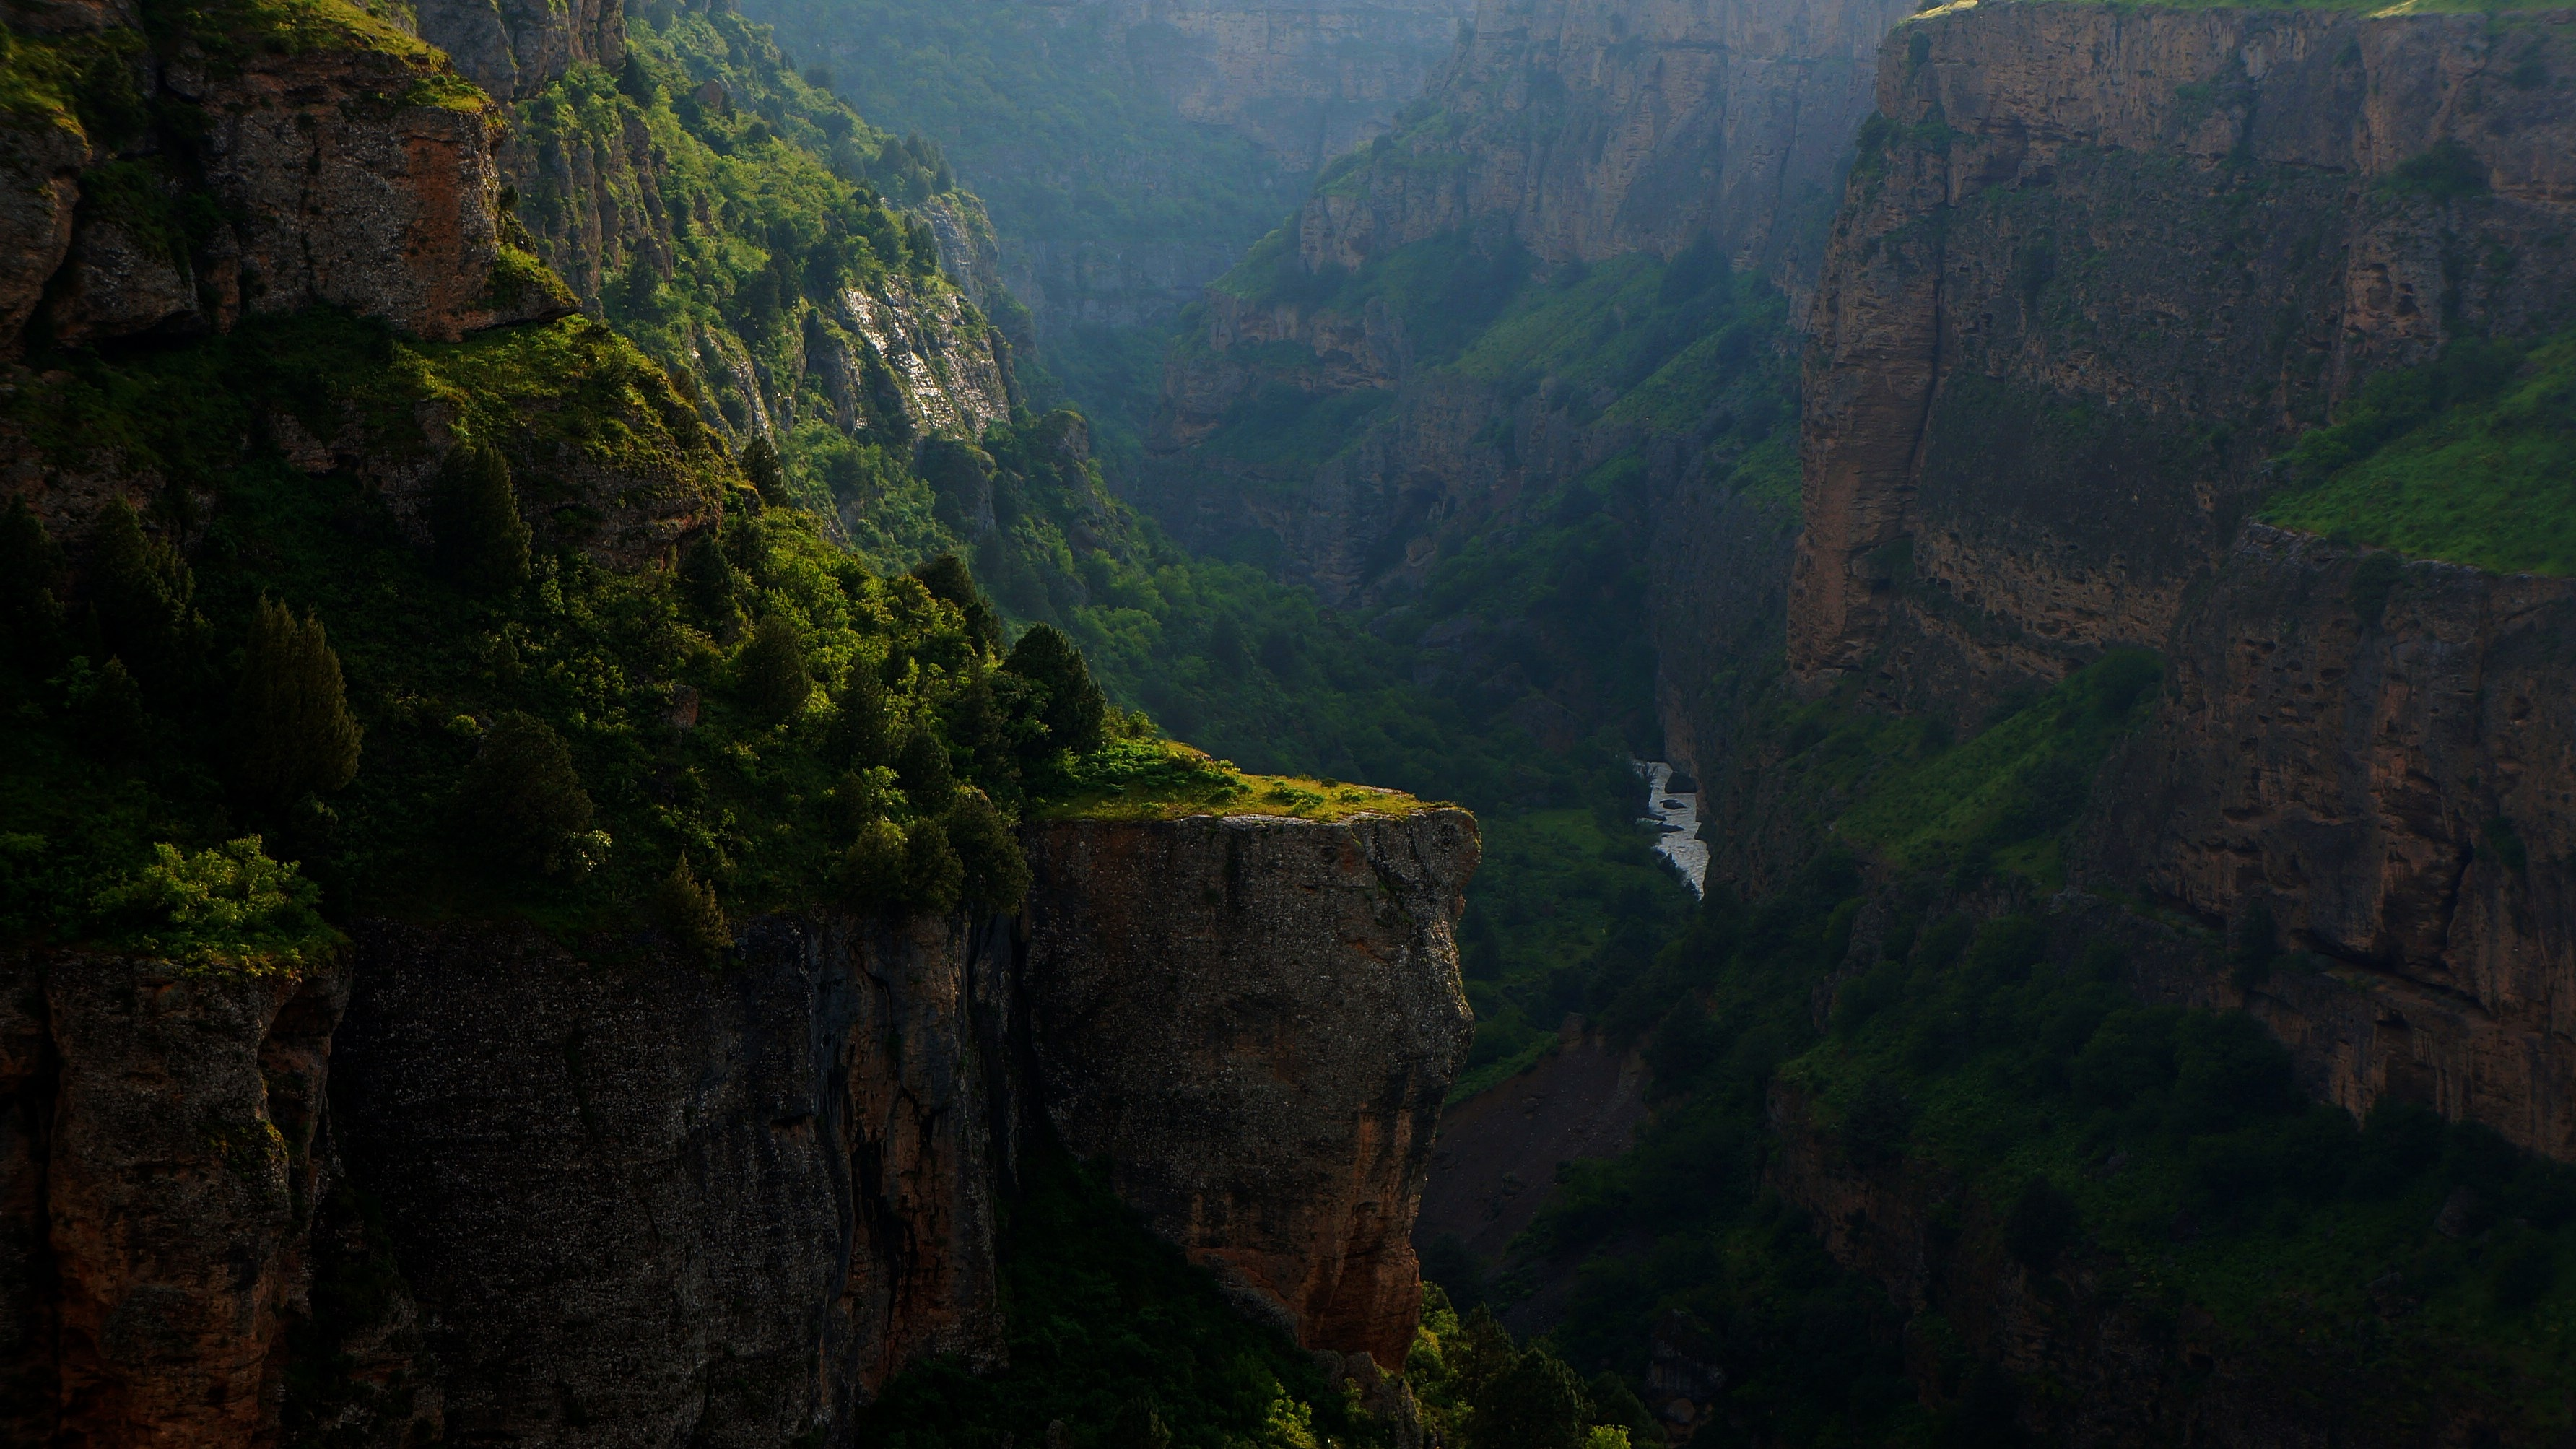 111343 download wallpaper Nature, Canyon, Rocks, Rivers, Break, Precipice, Mountains screensavers and pictures for free